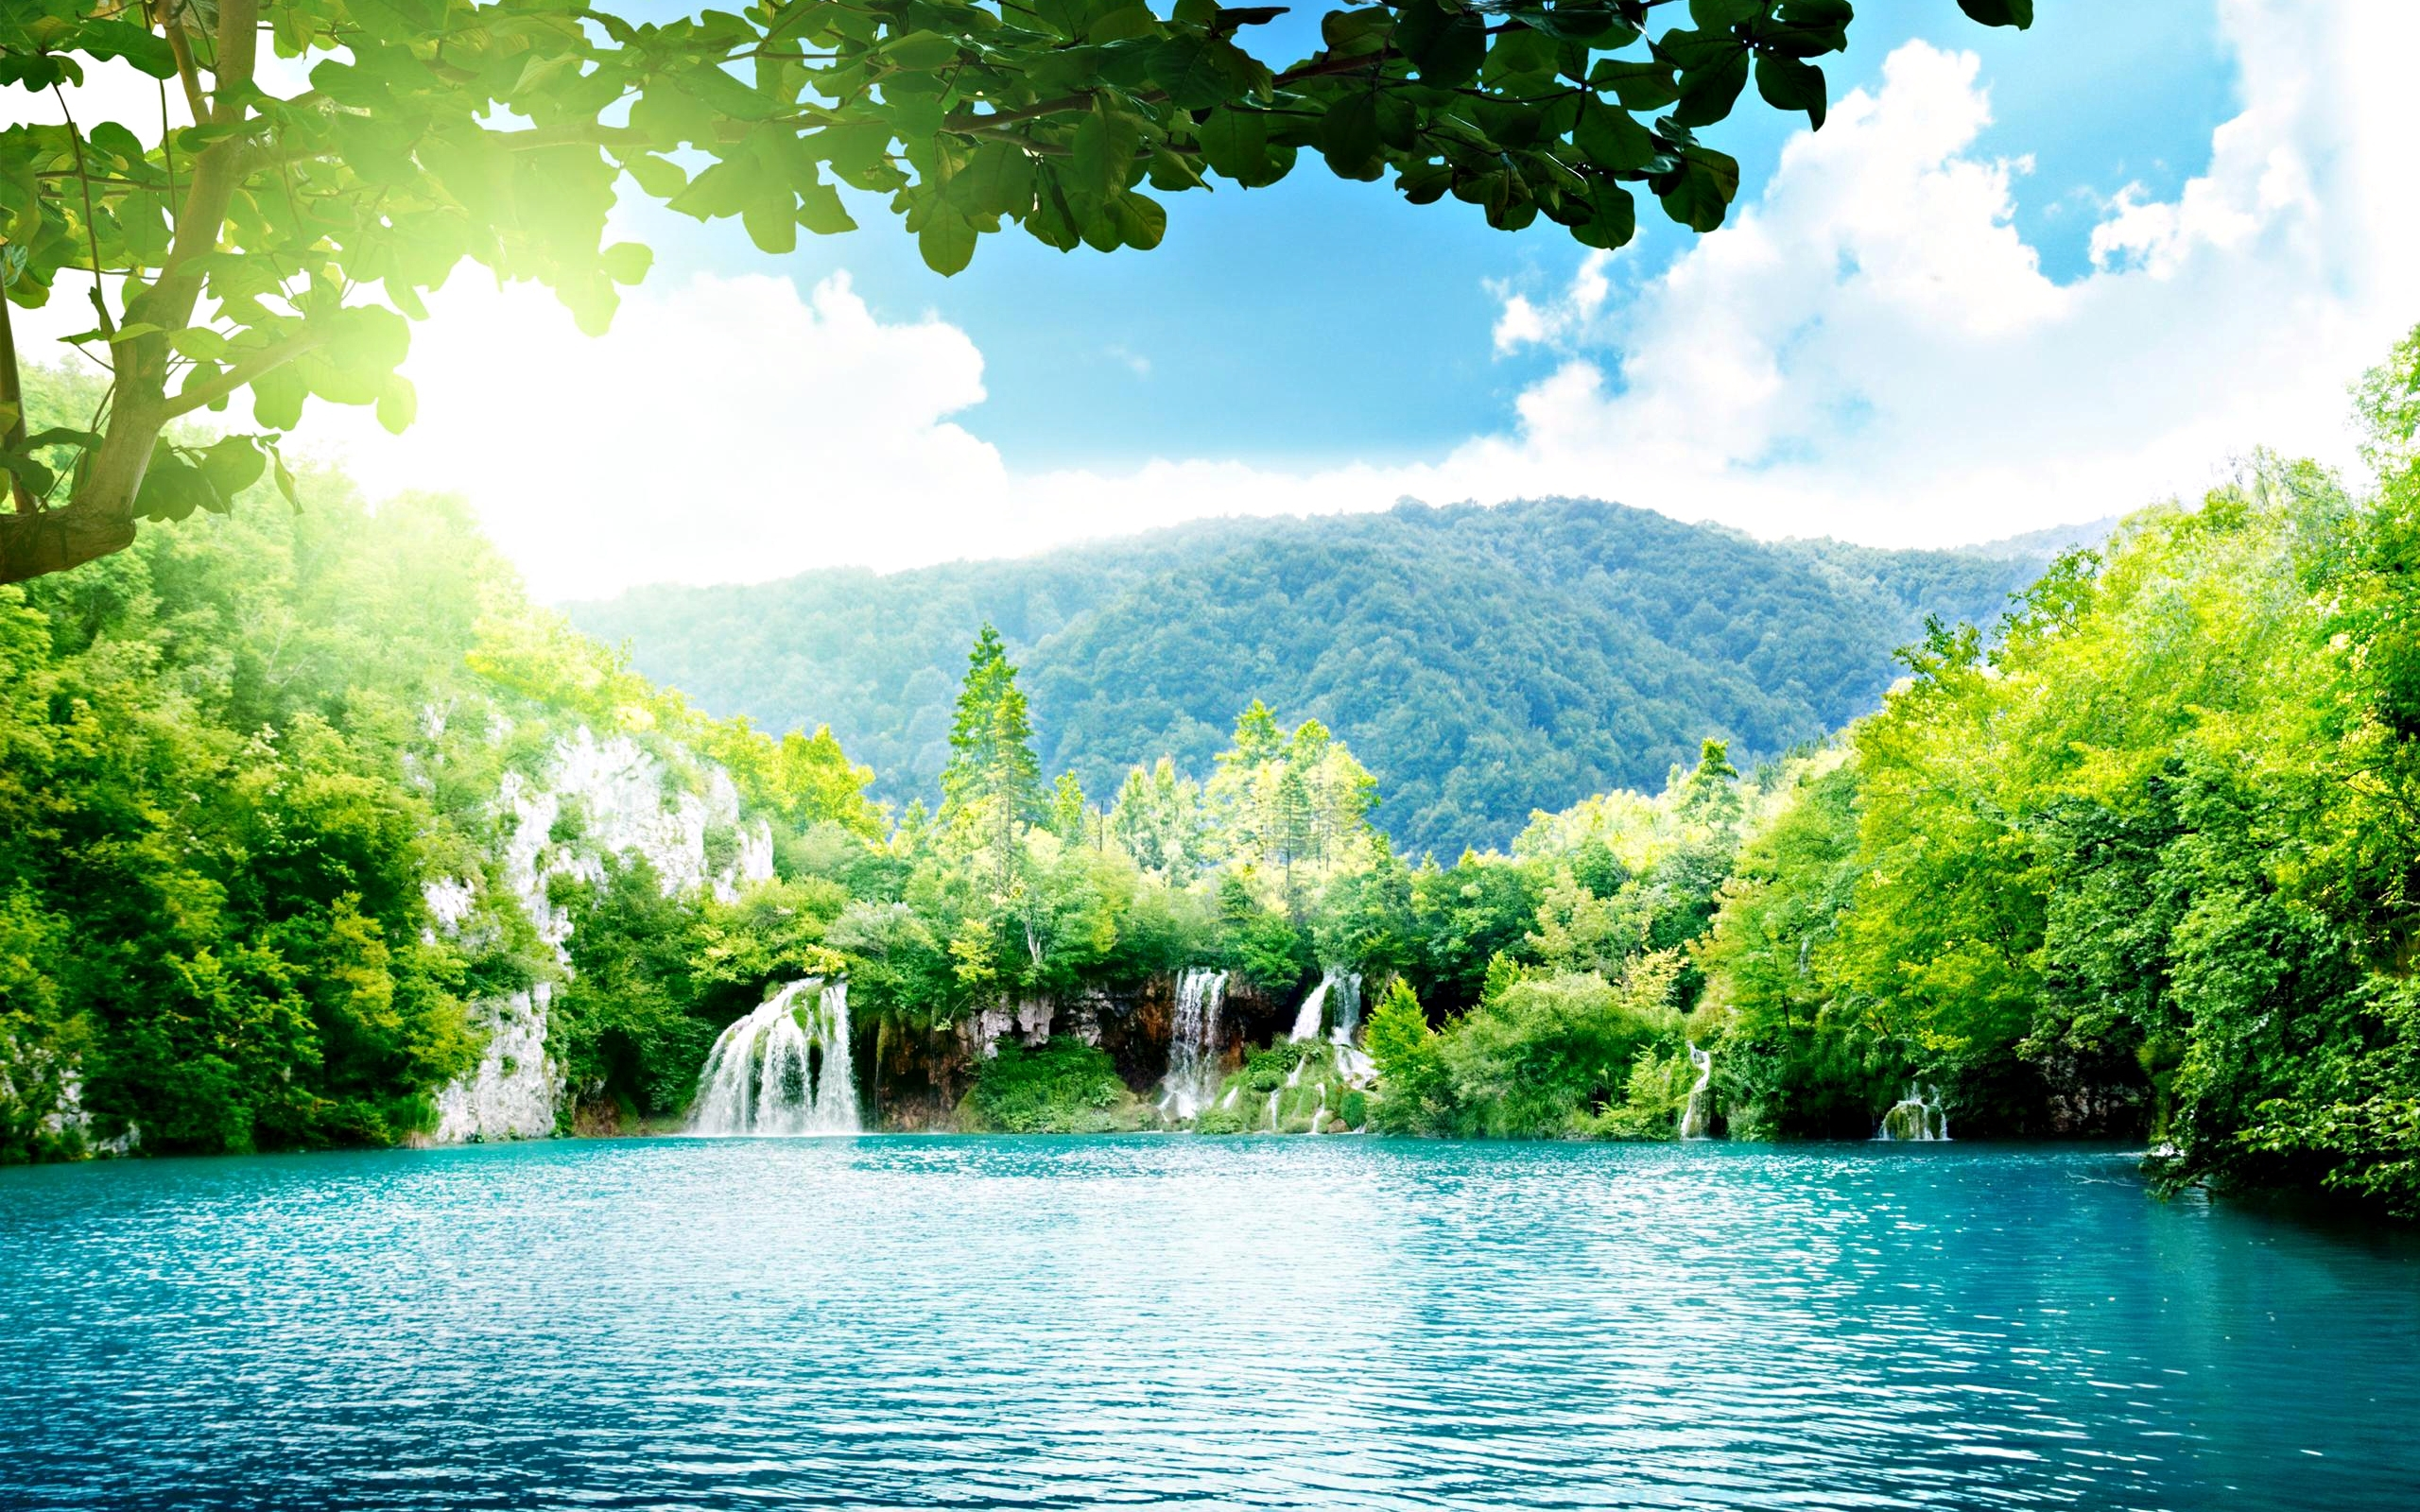 Most Beautiful Wallpaper For Desktop The most beautiful landscape 2560x1600